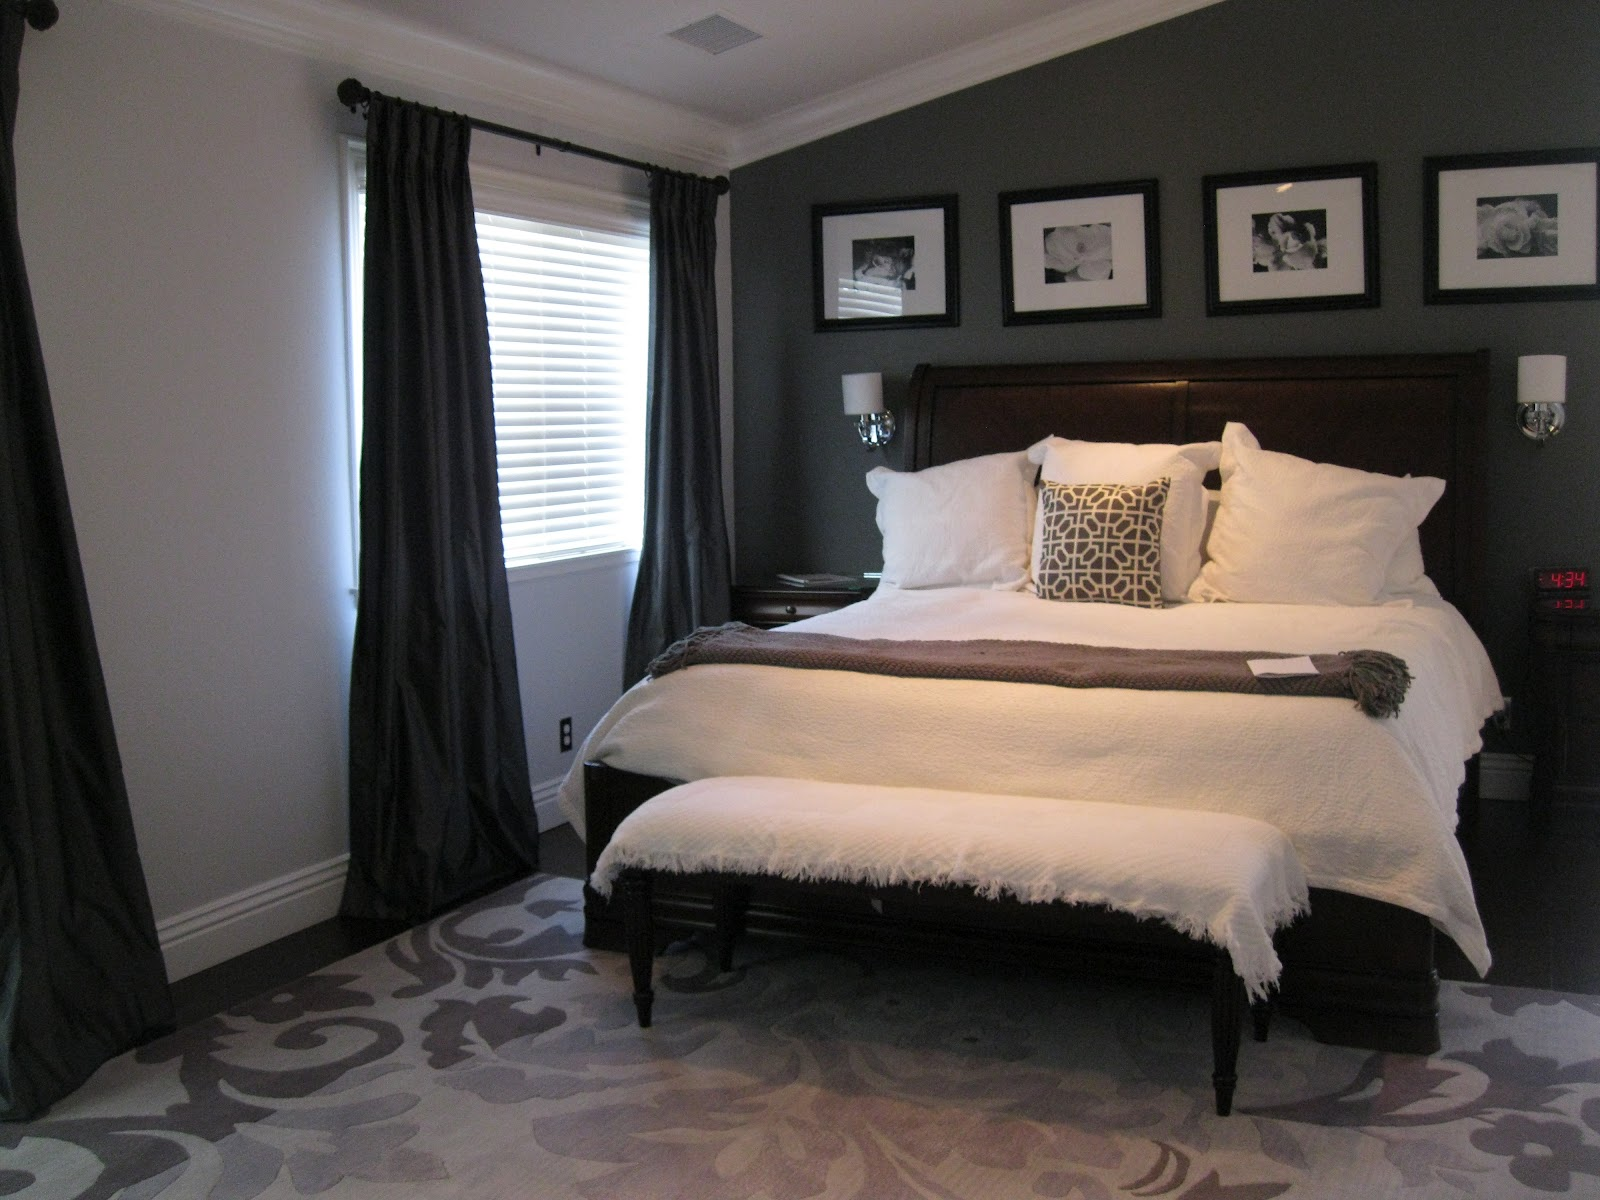 C b i d home decor and design charcoal gray master suite Bedroom ideas grey walls